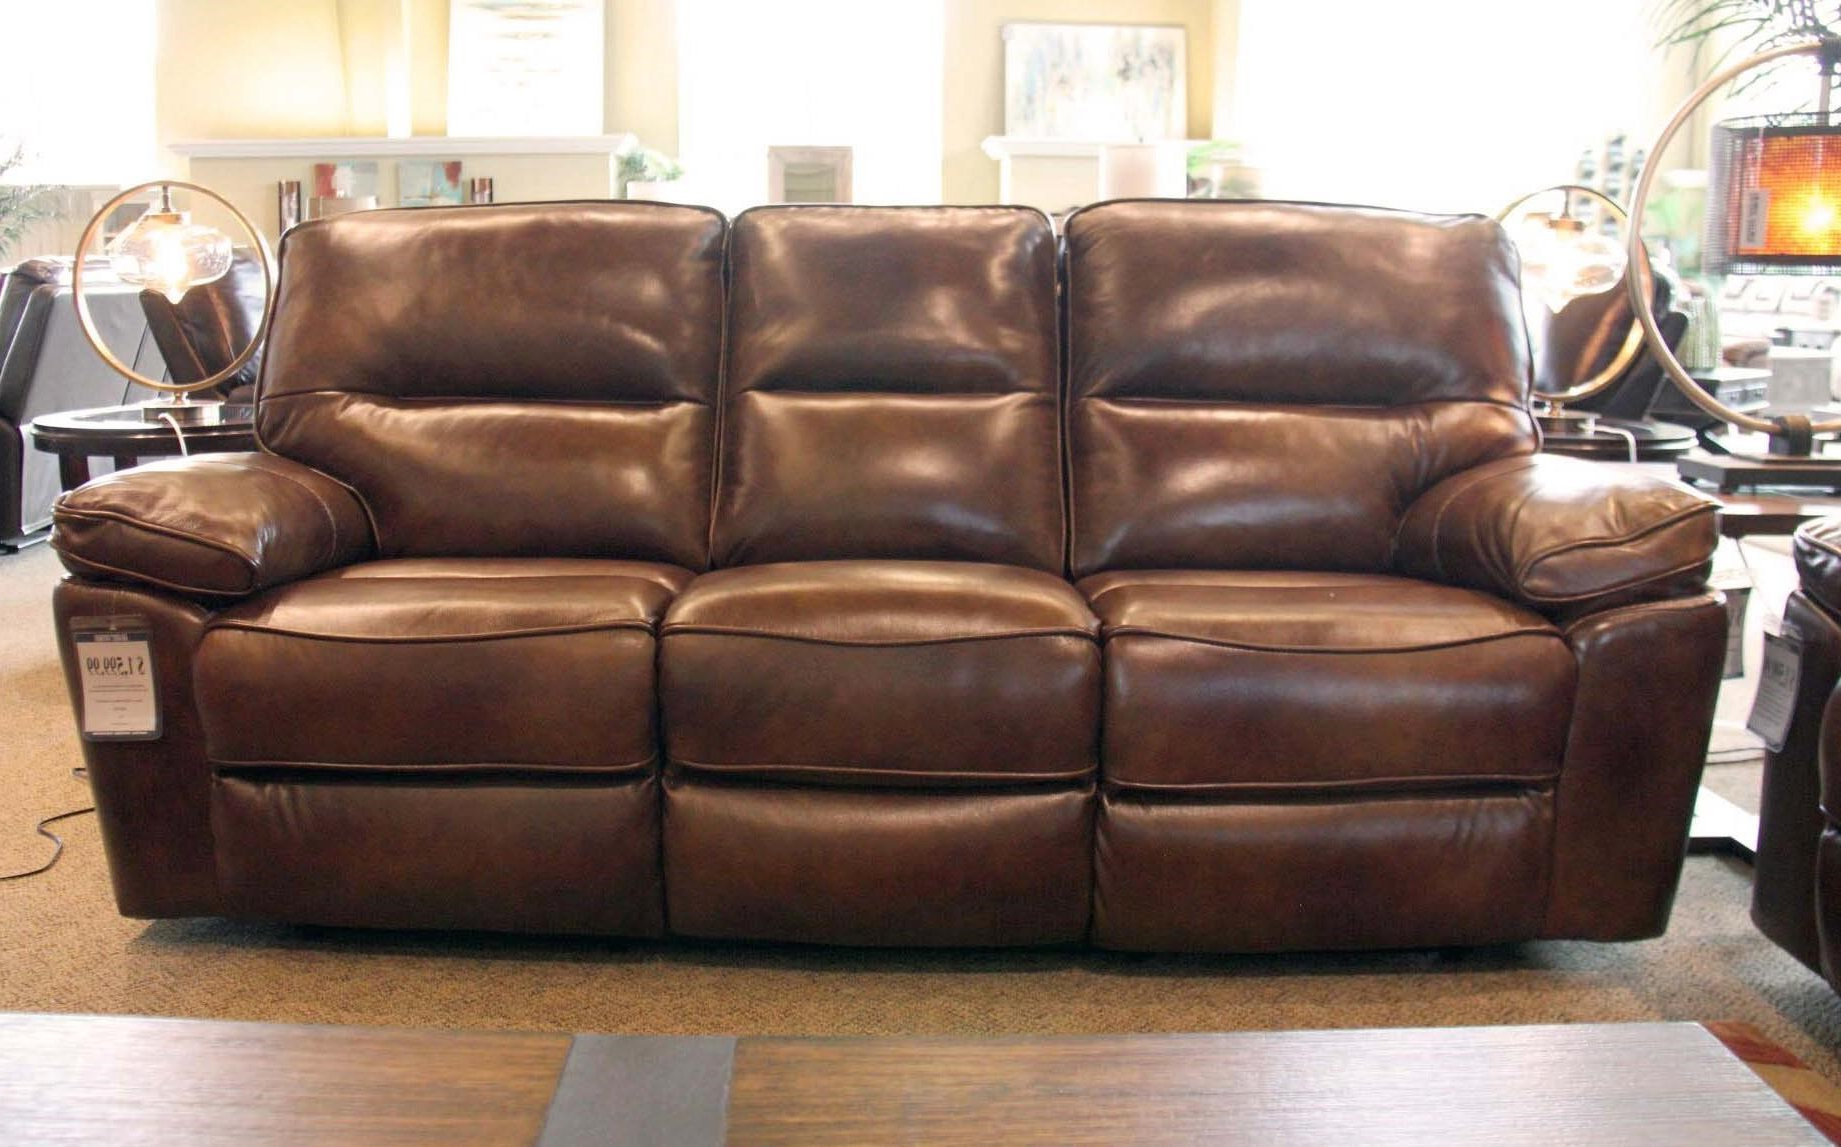 Best And Newest Cheers Montreal 5888 L3 2eh,4035 Dual Power Reclining Sofa Regarding Dual Power Reclining Sofas (View 11 of 20)